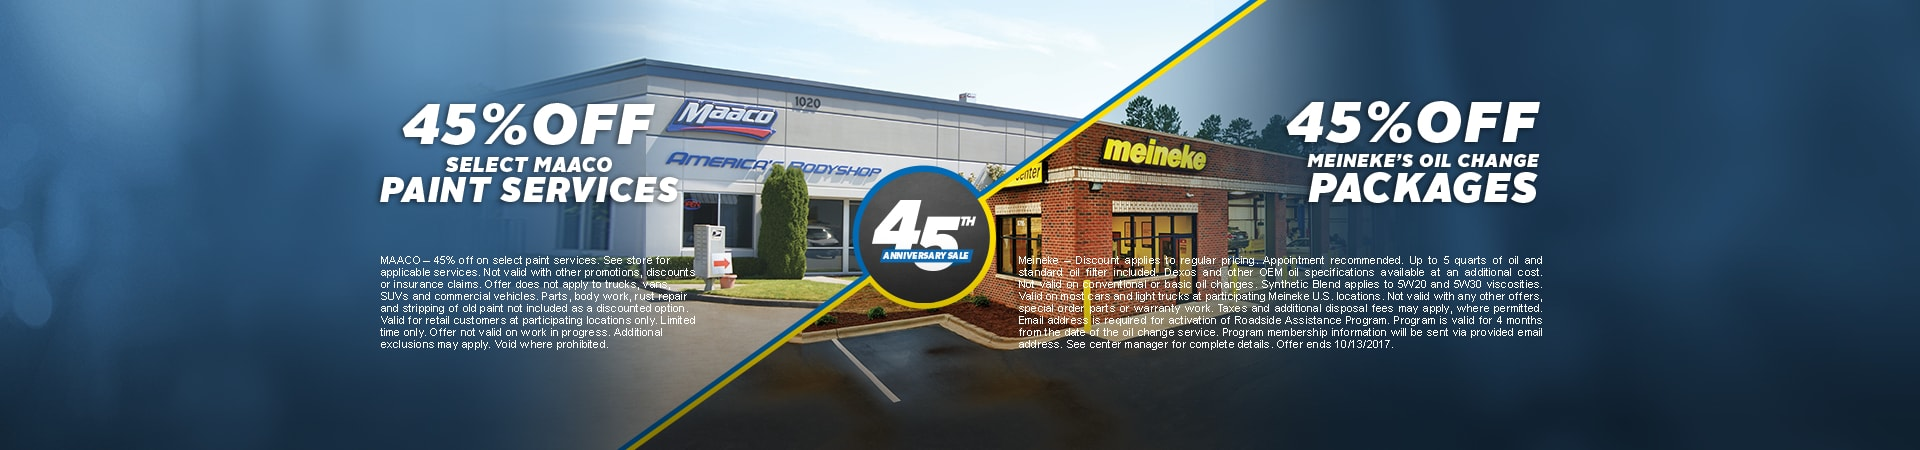 Maaco: 45th Anniversary - 45% off paint service & 45% off Meieneke Oil Change Packages